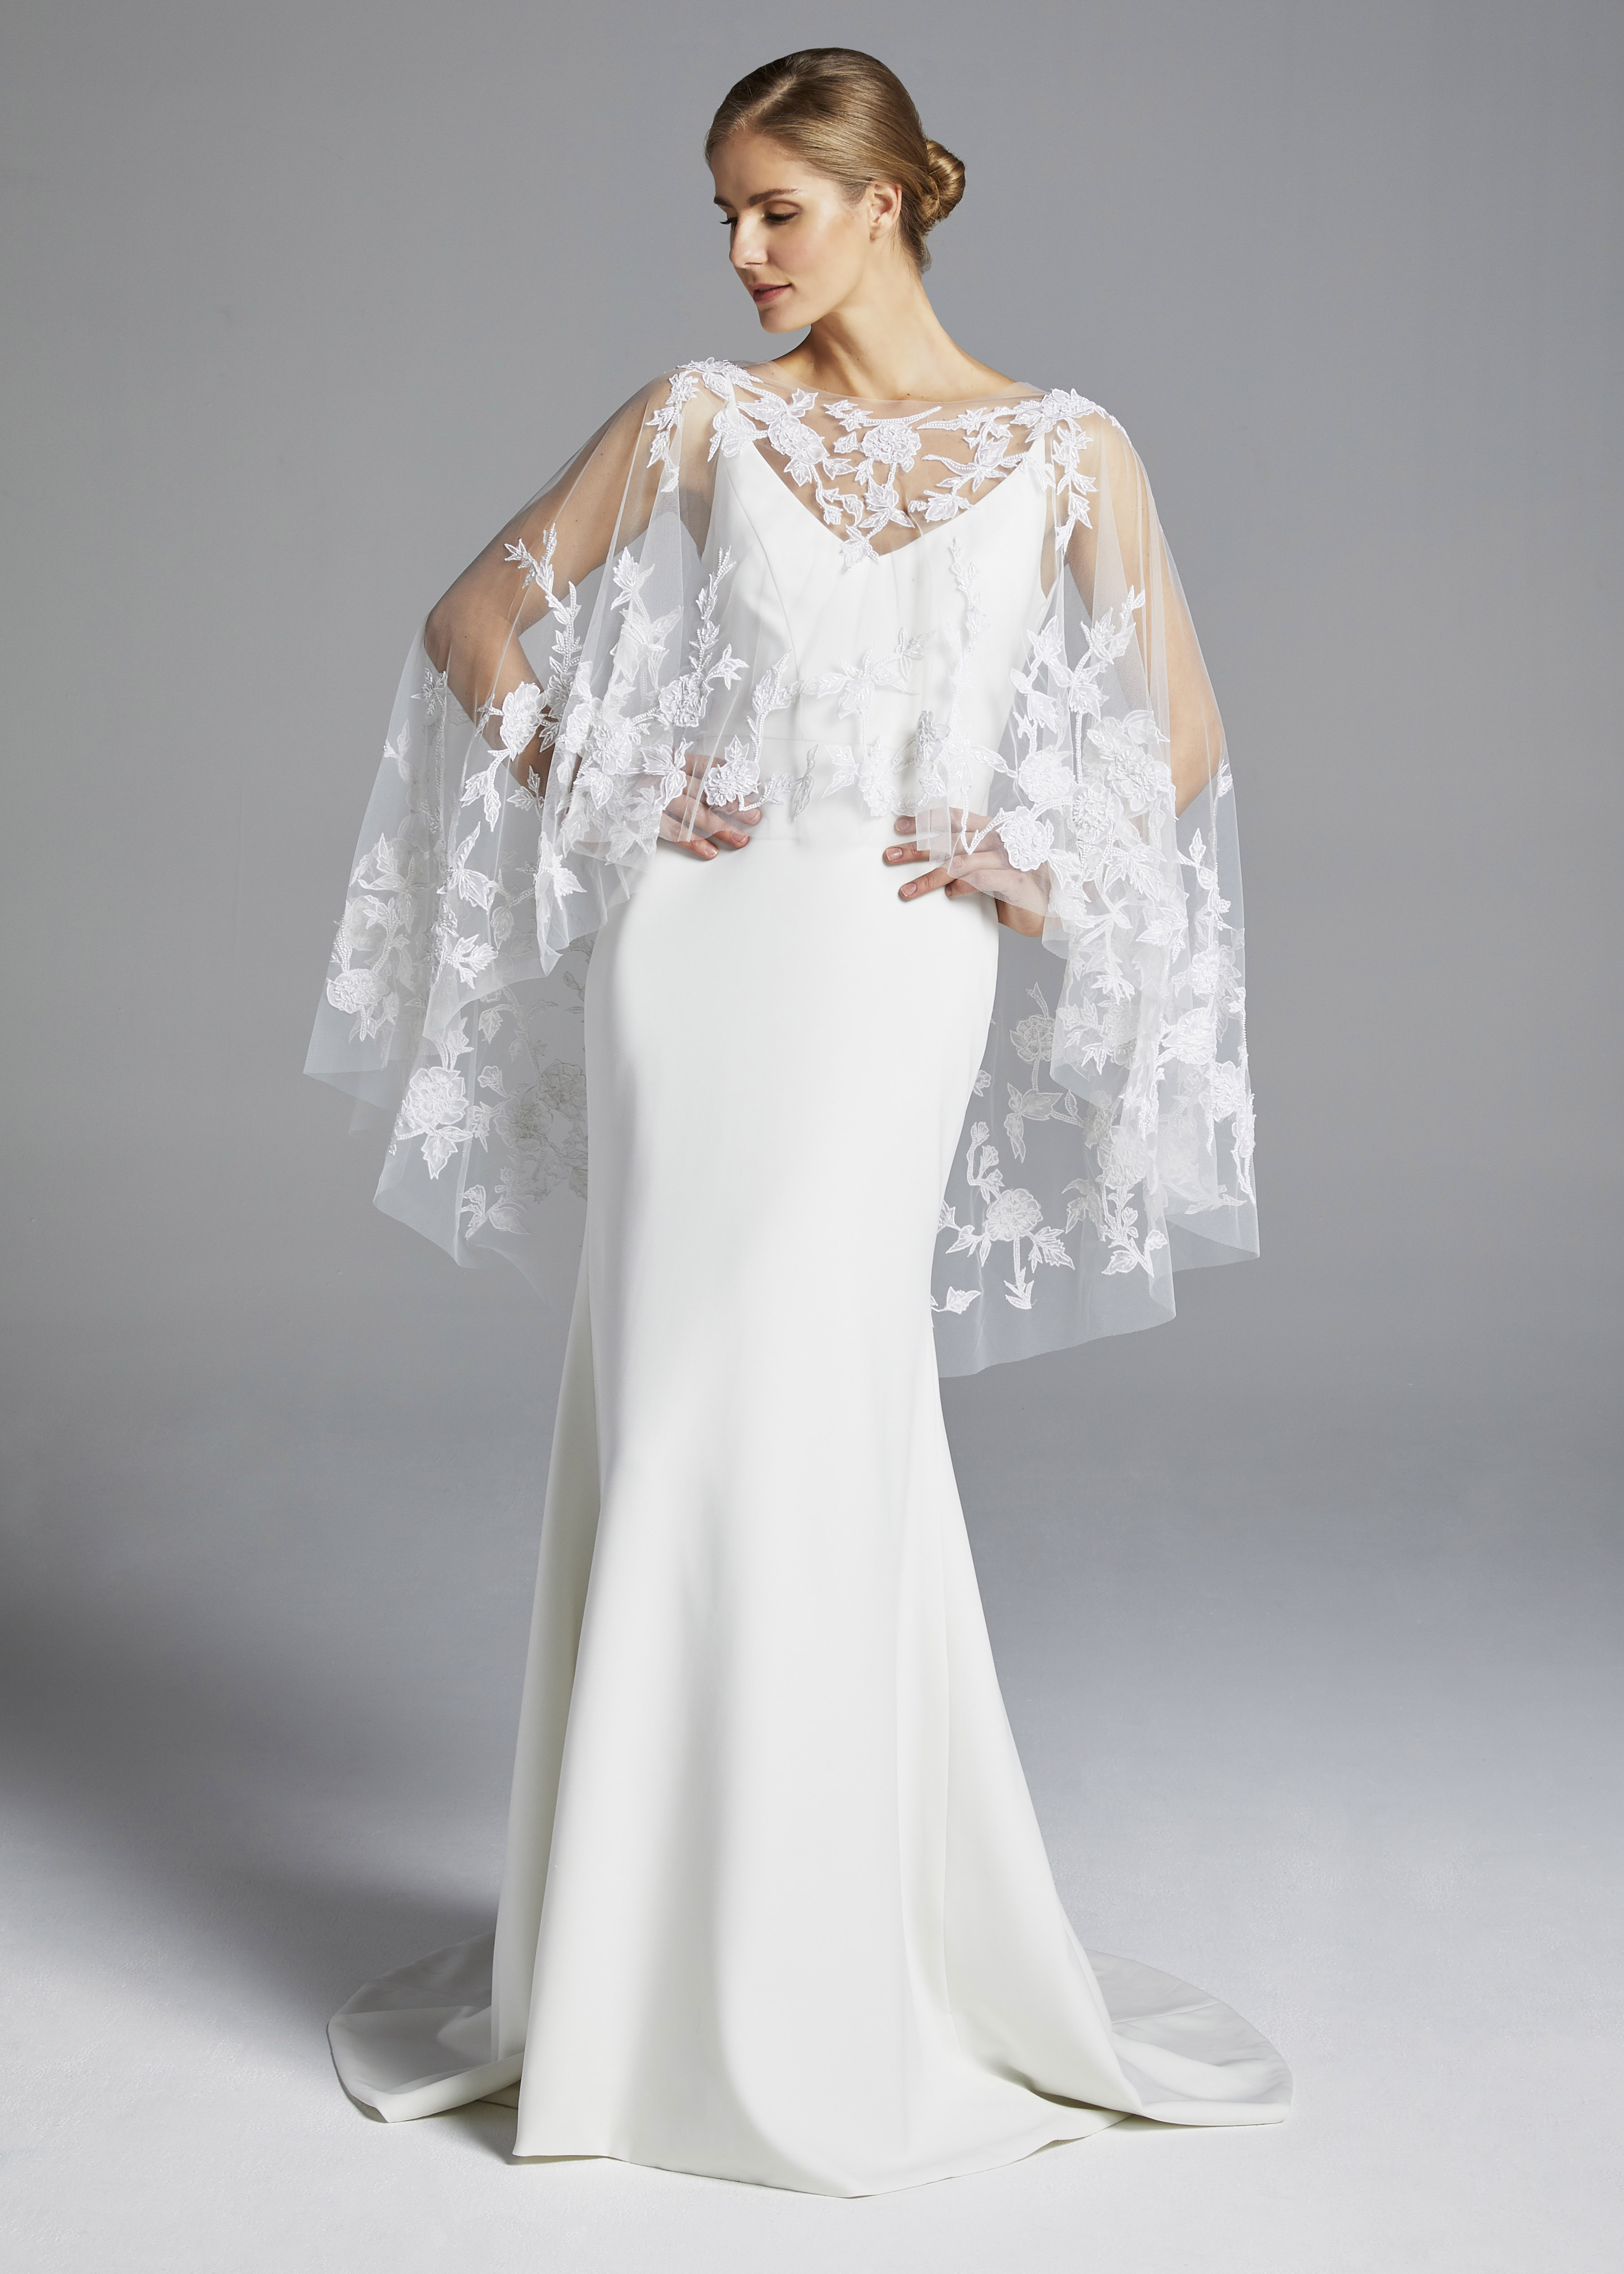 anne barge spaghetti strap with cape wedding dress spring 2019